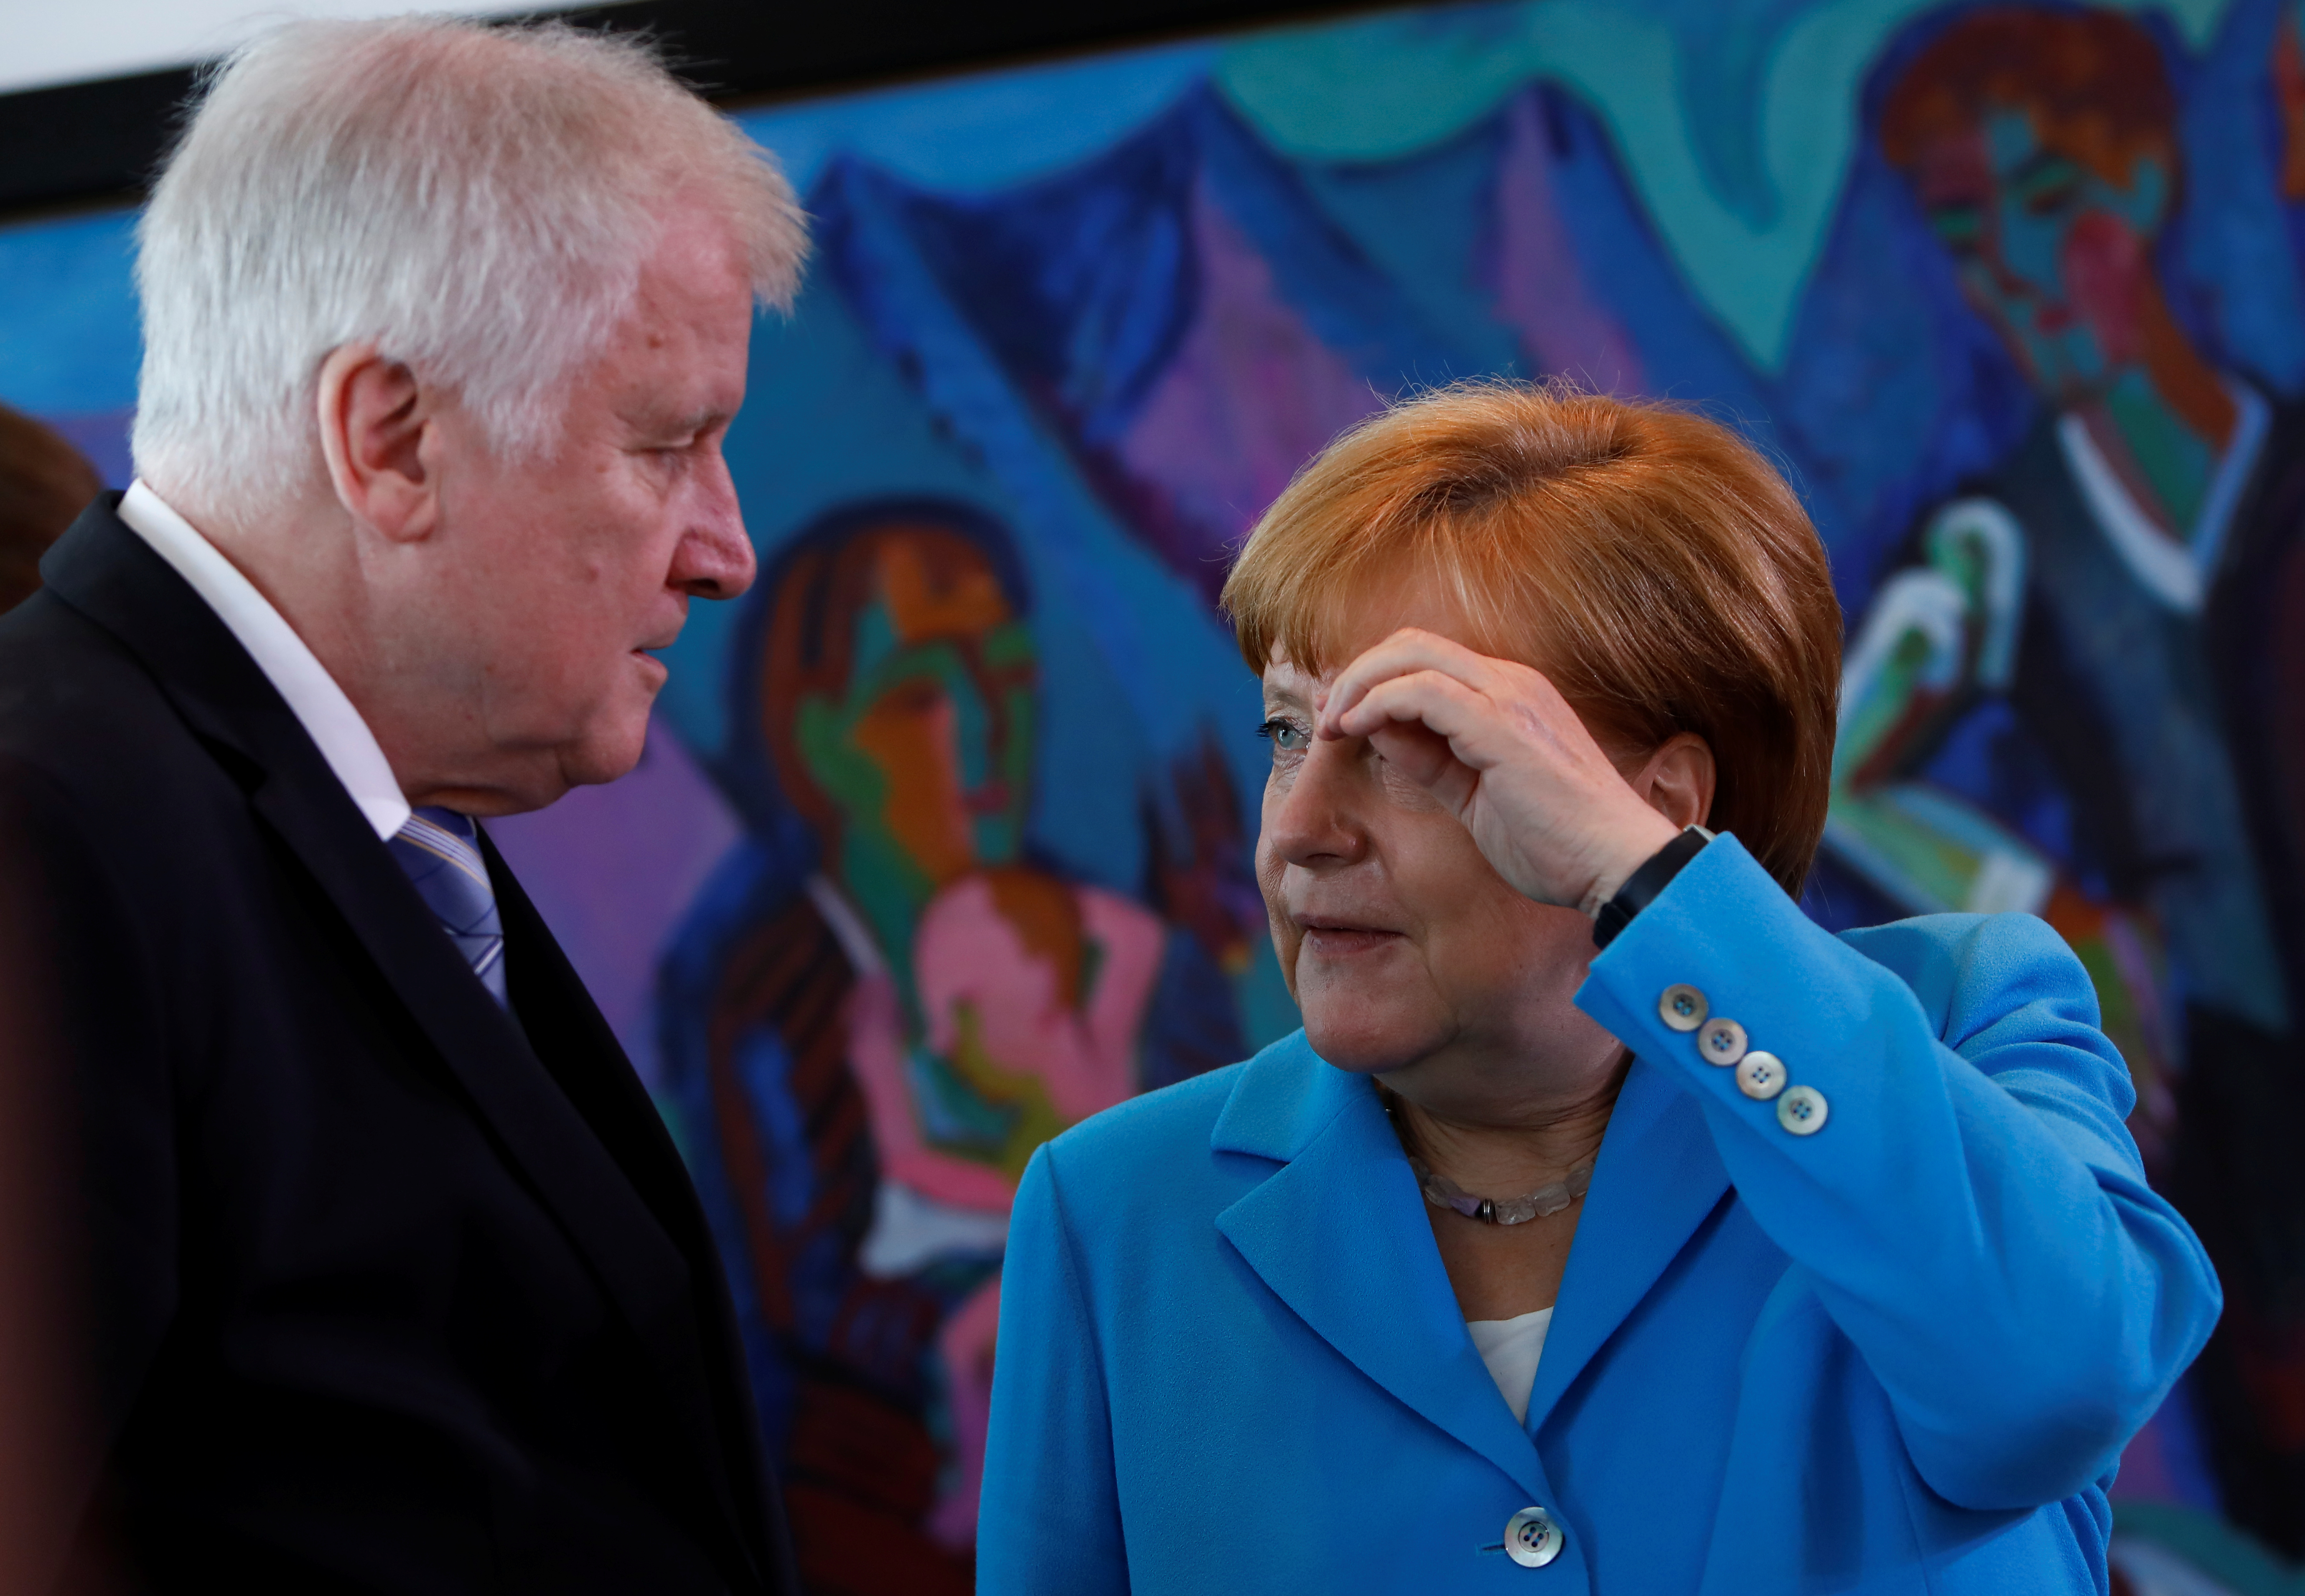 German Chancellor Angela Merkel talks to Interior Minister Horst Seehofer before the weekly cabinet meeting in Berlin, Germany, June 13, 2018. REUTERS/Michele Tantussi - RC12C114A180